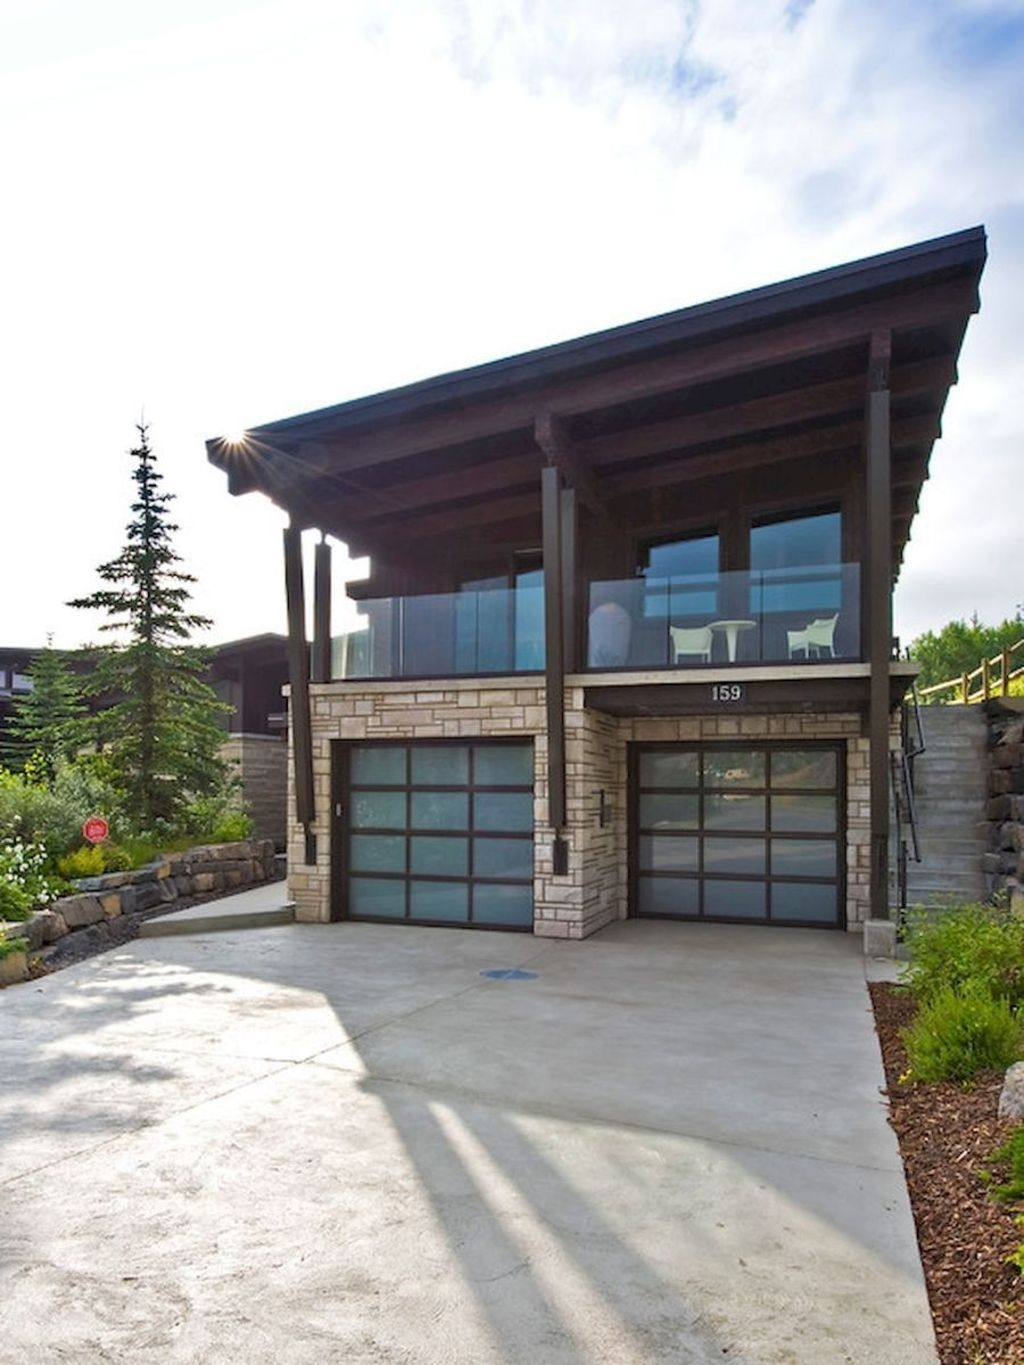 Cute Home Garage Design Ideas For Your Minimalist Home35